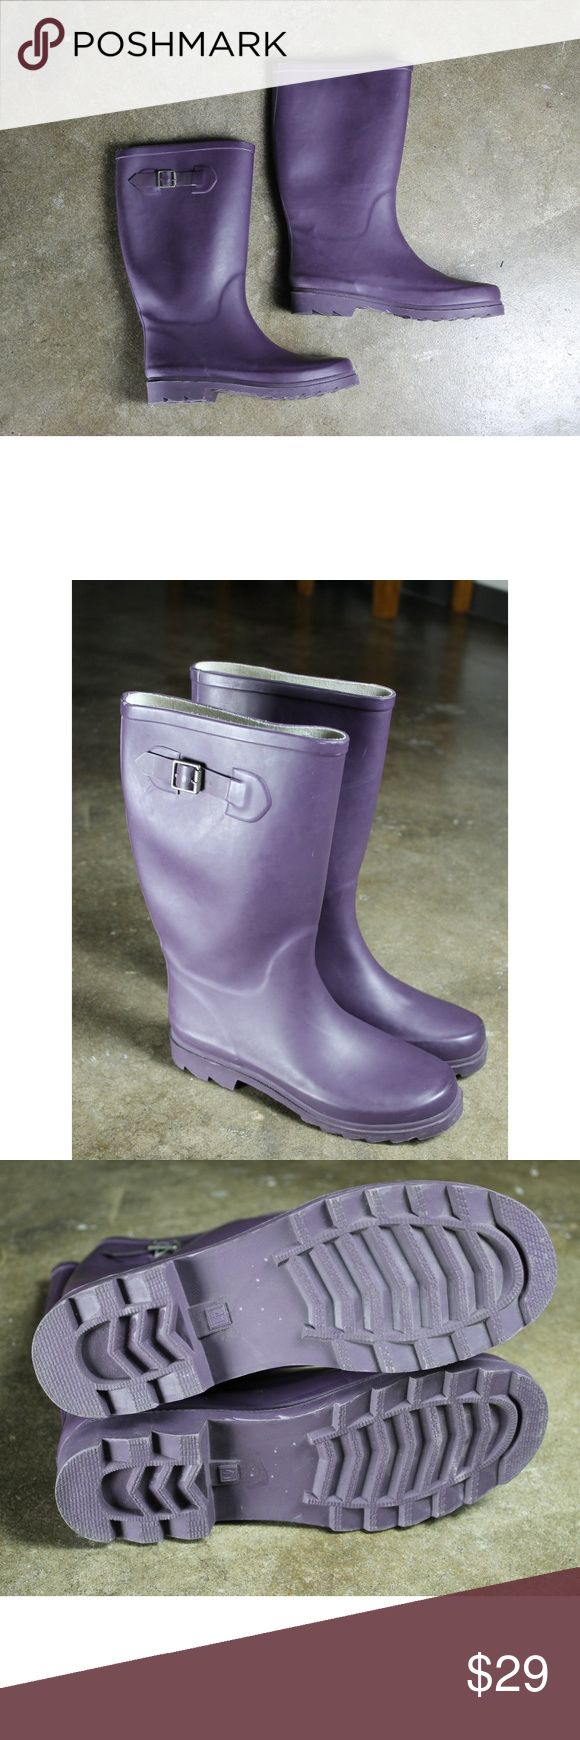 Aldo purple rain boots Sz 41.  Aldo purple rain boots.  Great condition see photos. Aldo Shoes Winter & Rain Boots